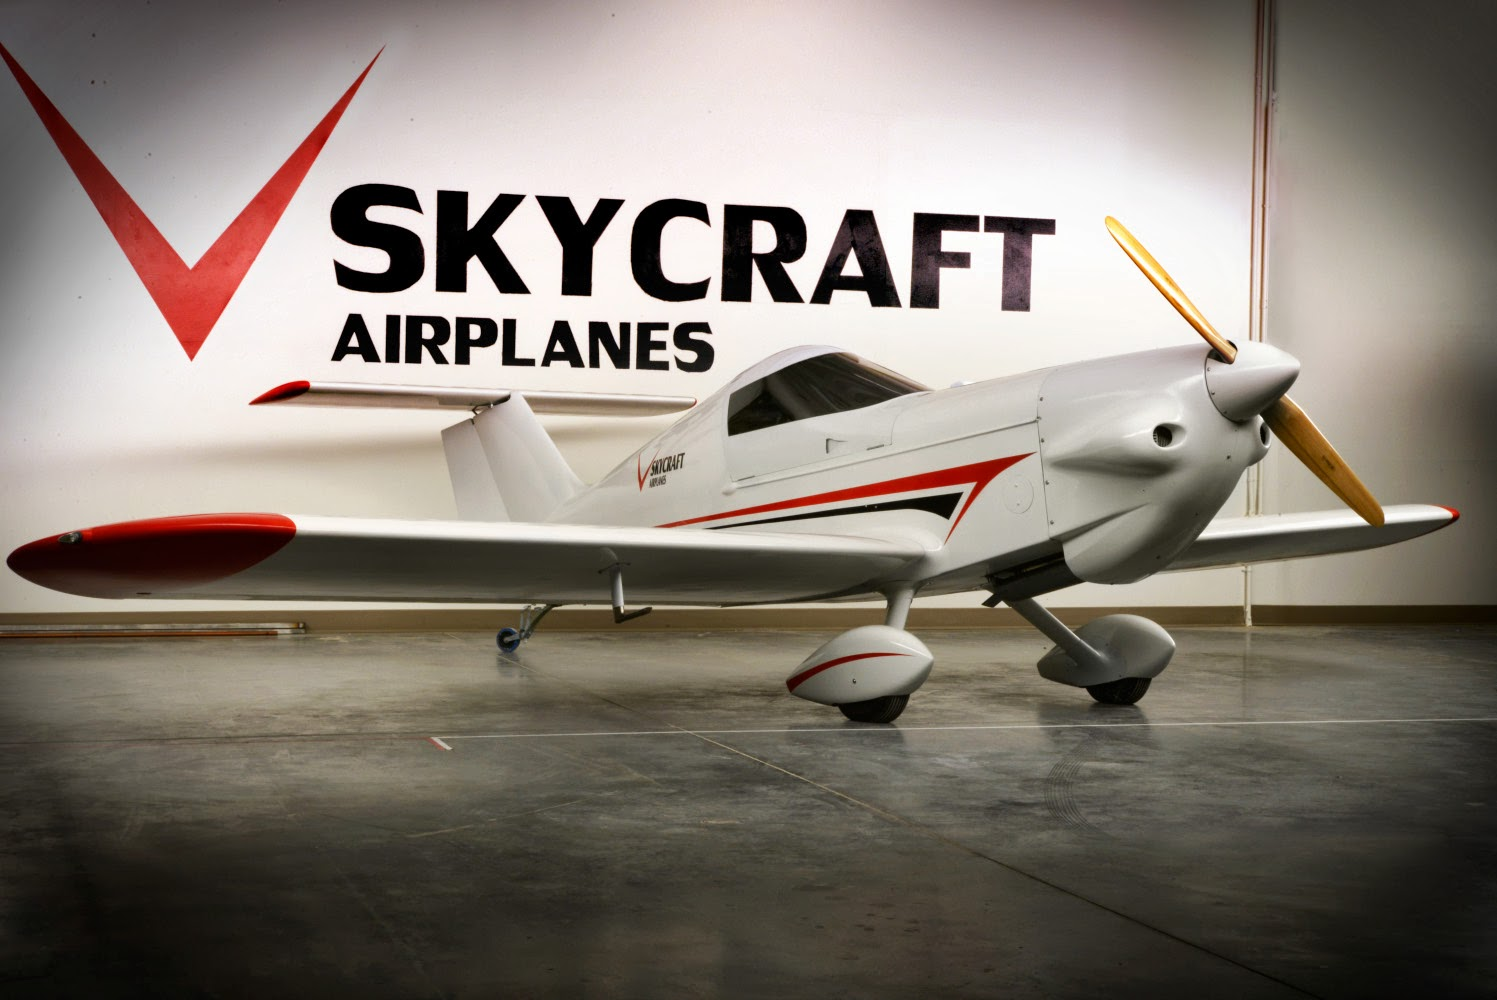 You Can Buy a Personal Aircraft with Your Bitcoins